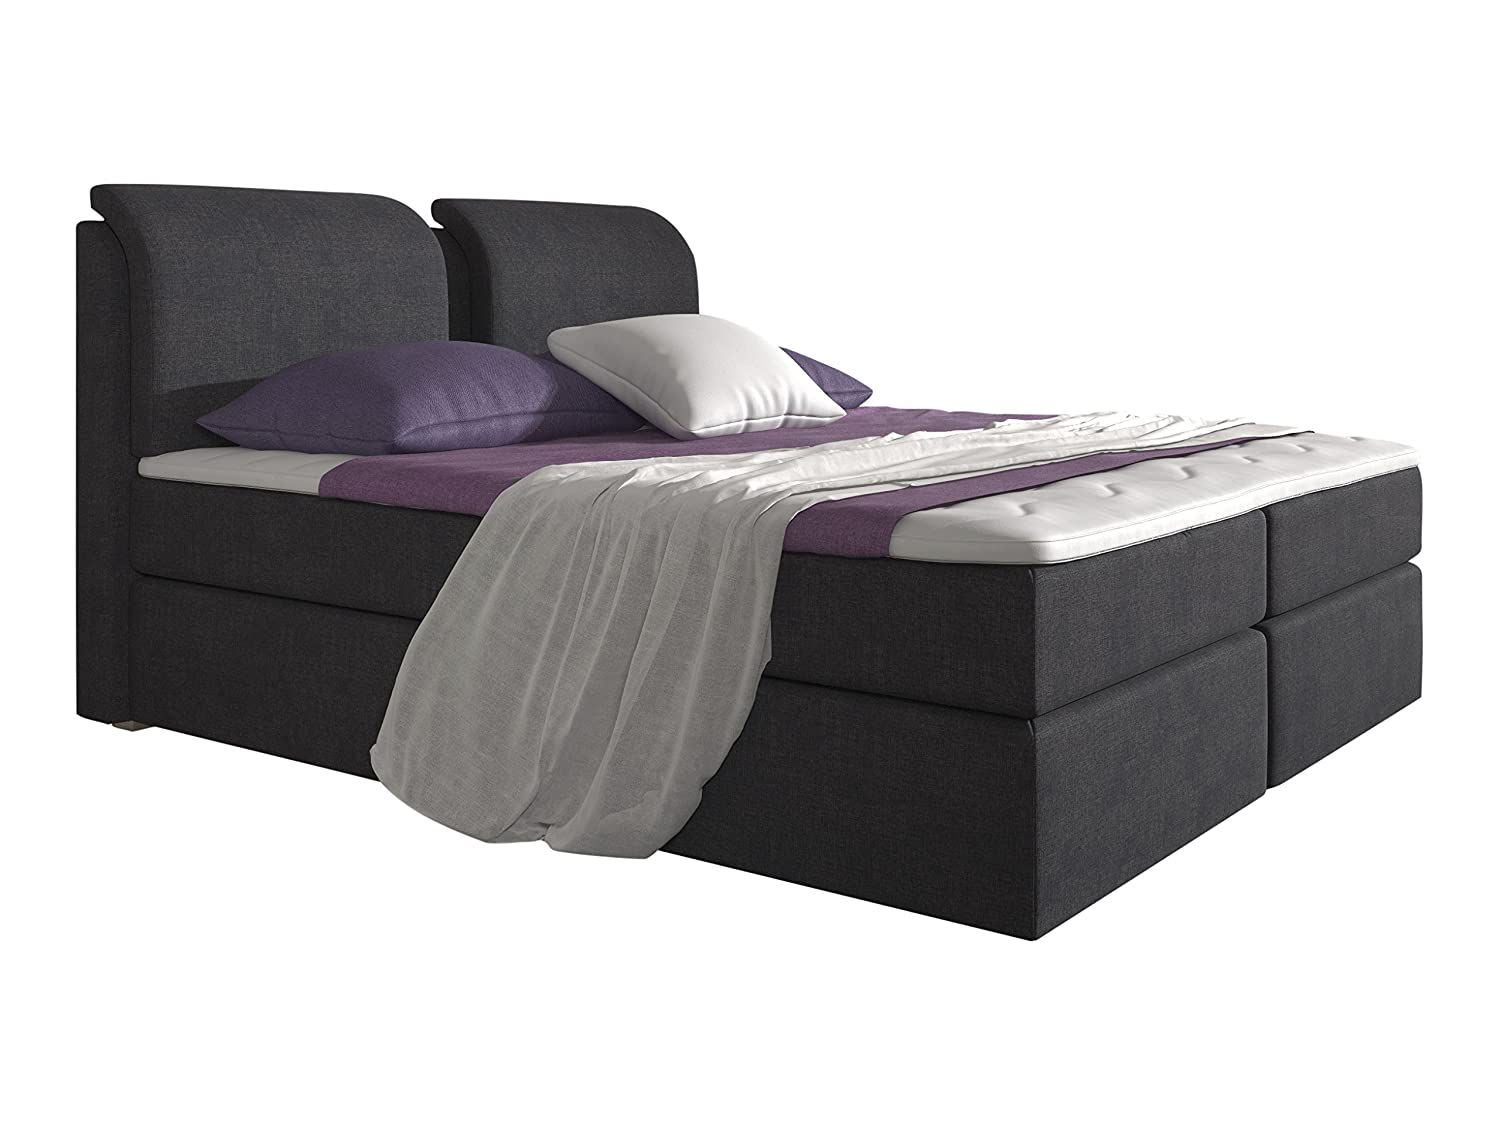 trendteam boxspringbett polsterbett borneo boxspringbett 180x200 beste wahl boxspringbetten. Black Bedroom Furniture Sets. Home Design Ideas